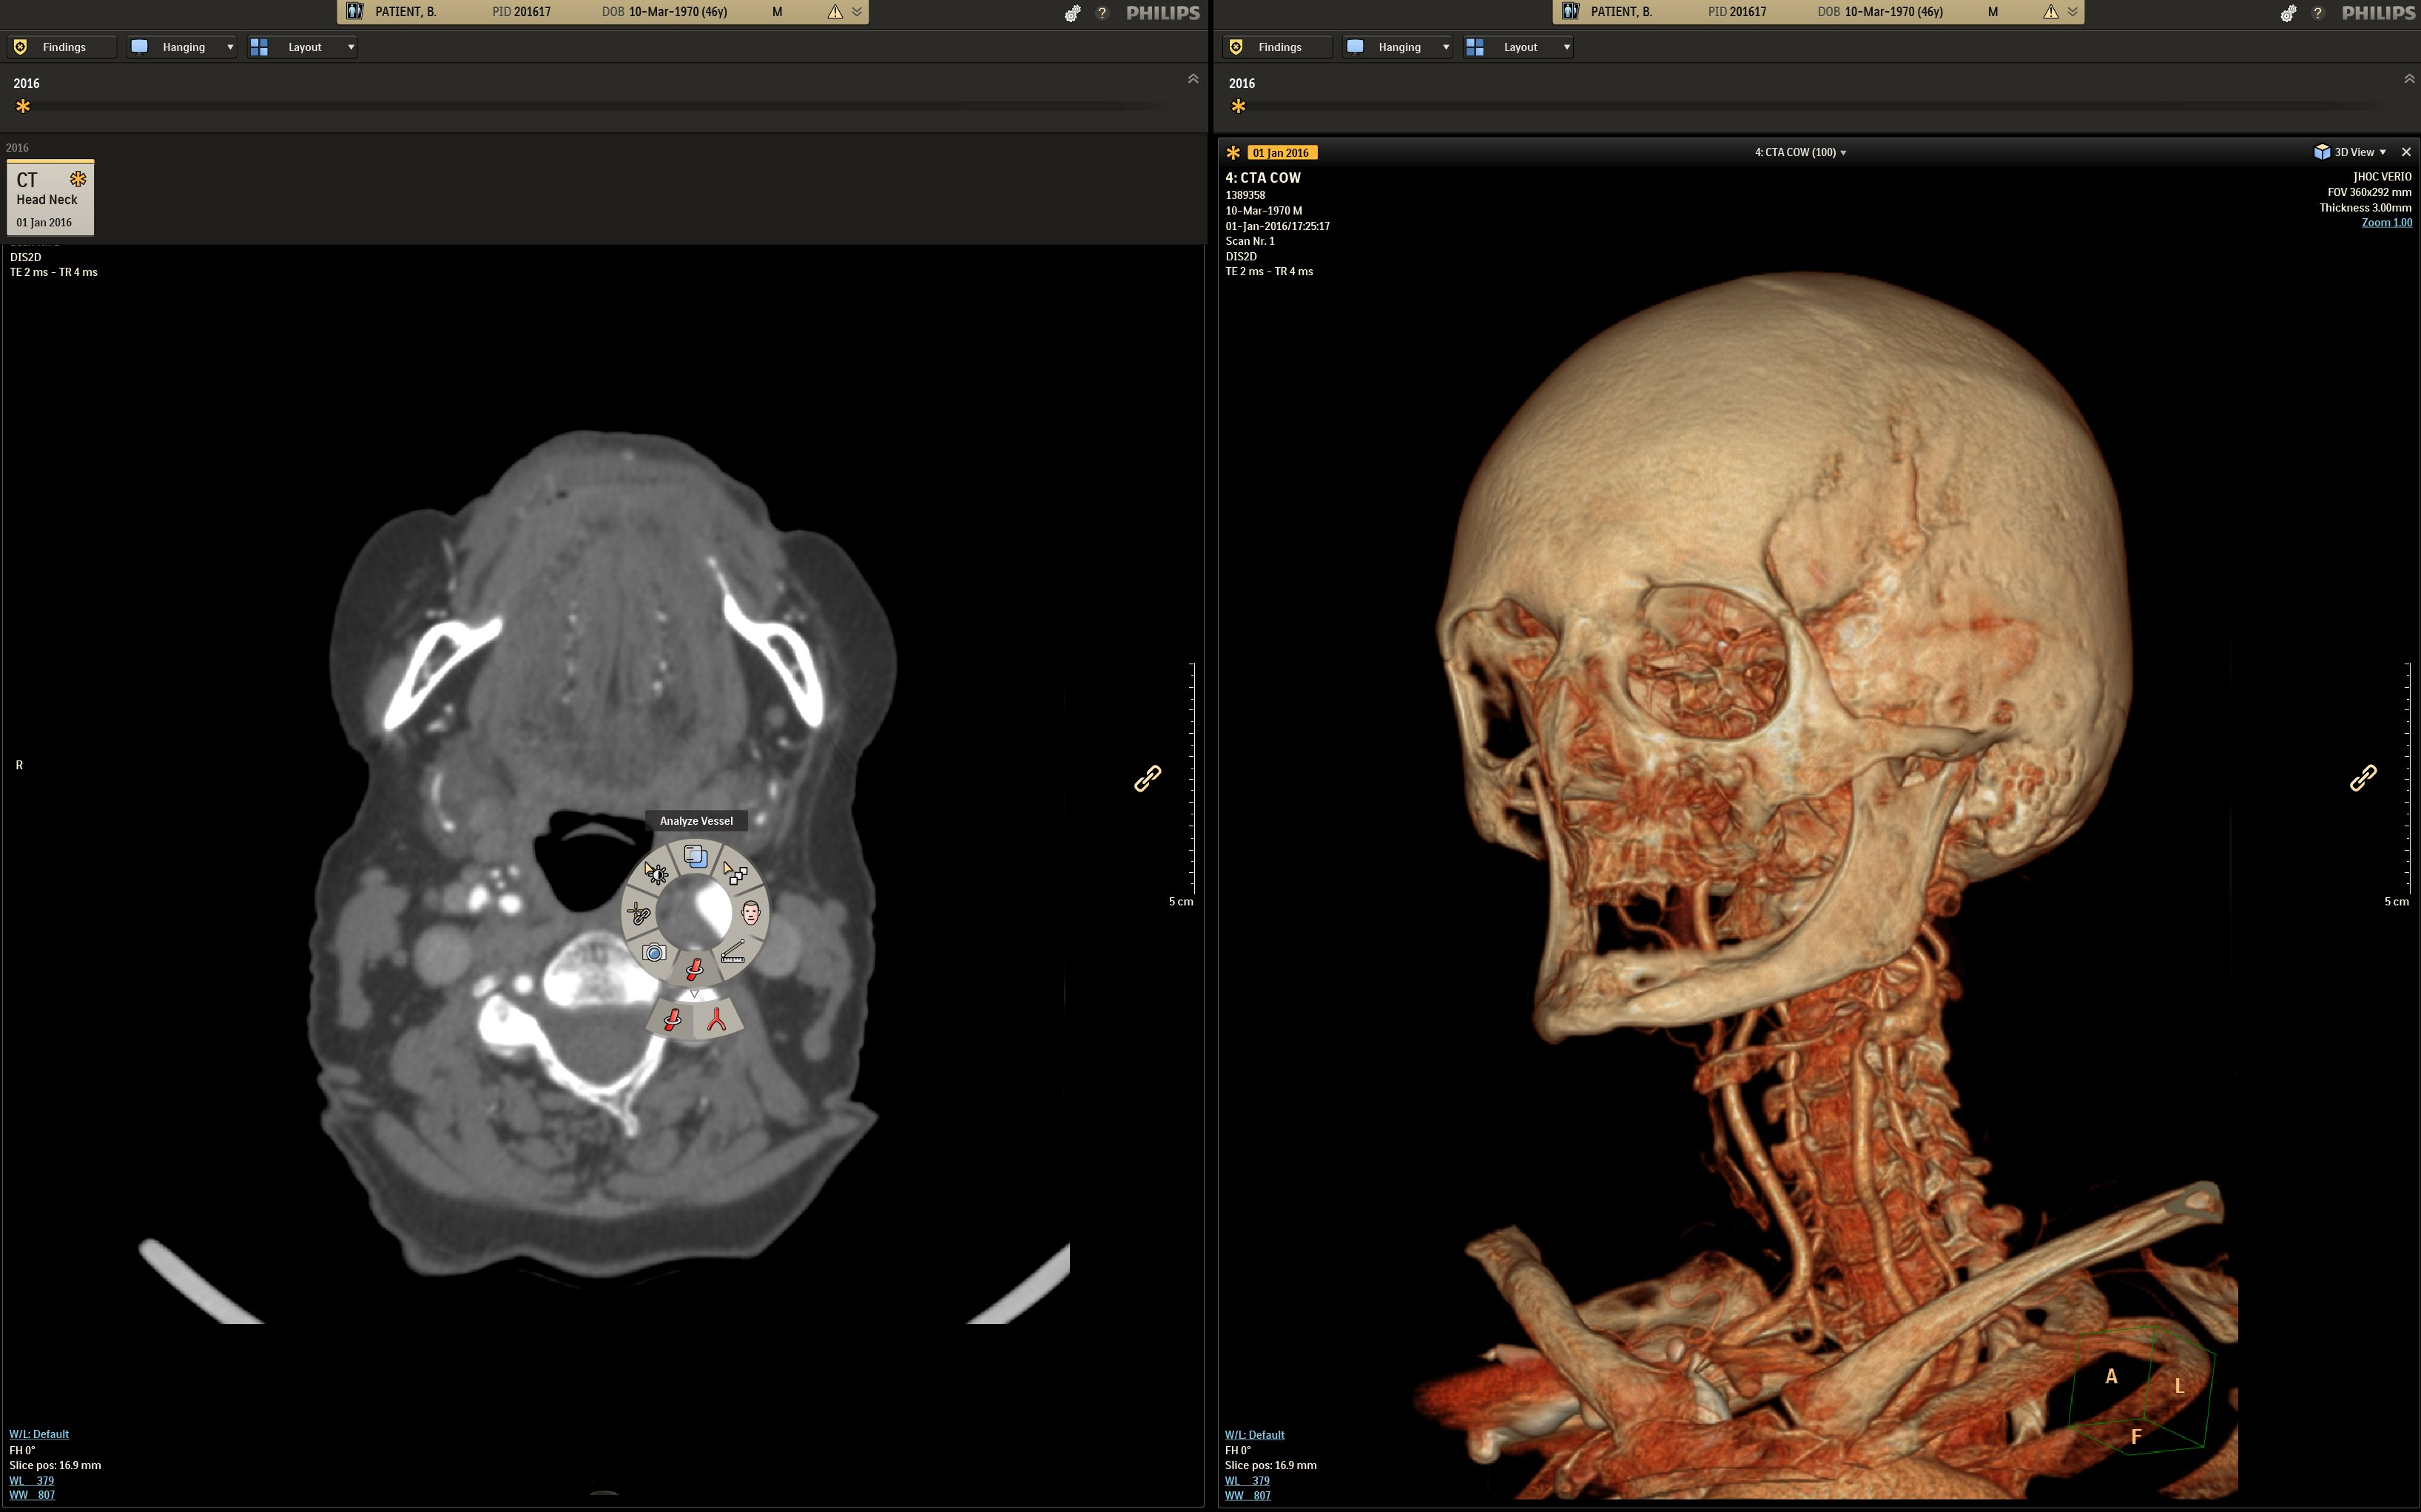 Intel and Philips recently tested two healthcare uses for deep learning inference models using Intel Xeon Scalable processors and the OpenVINO toolkit. One use case focused on X-rays of bones for bone-age-prediction modeling, the other on computed tomogra